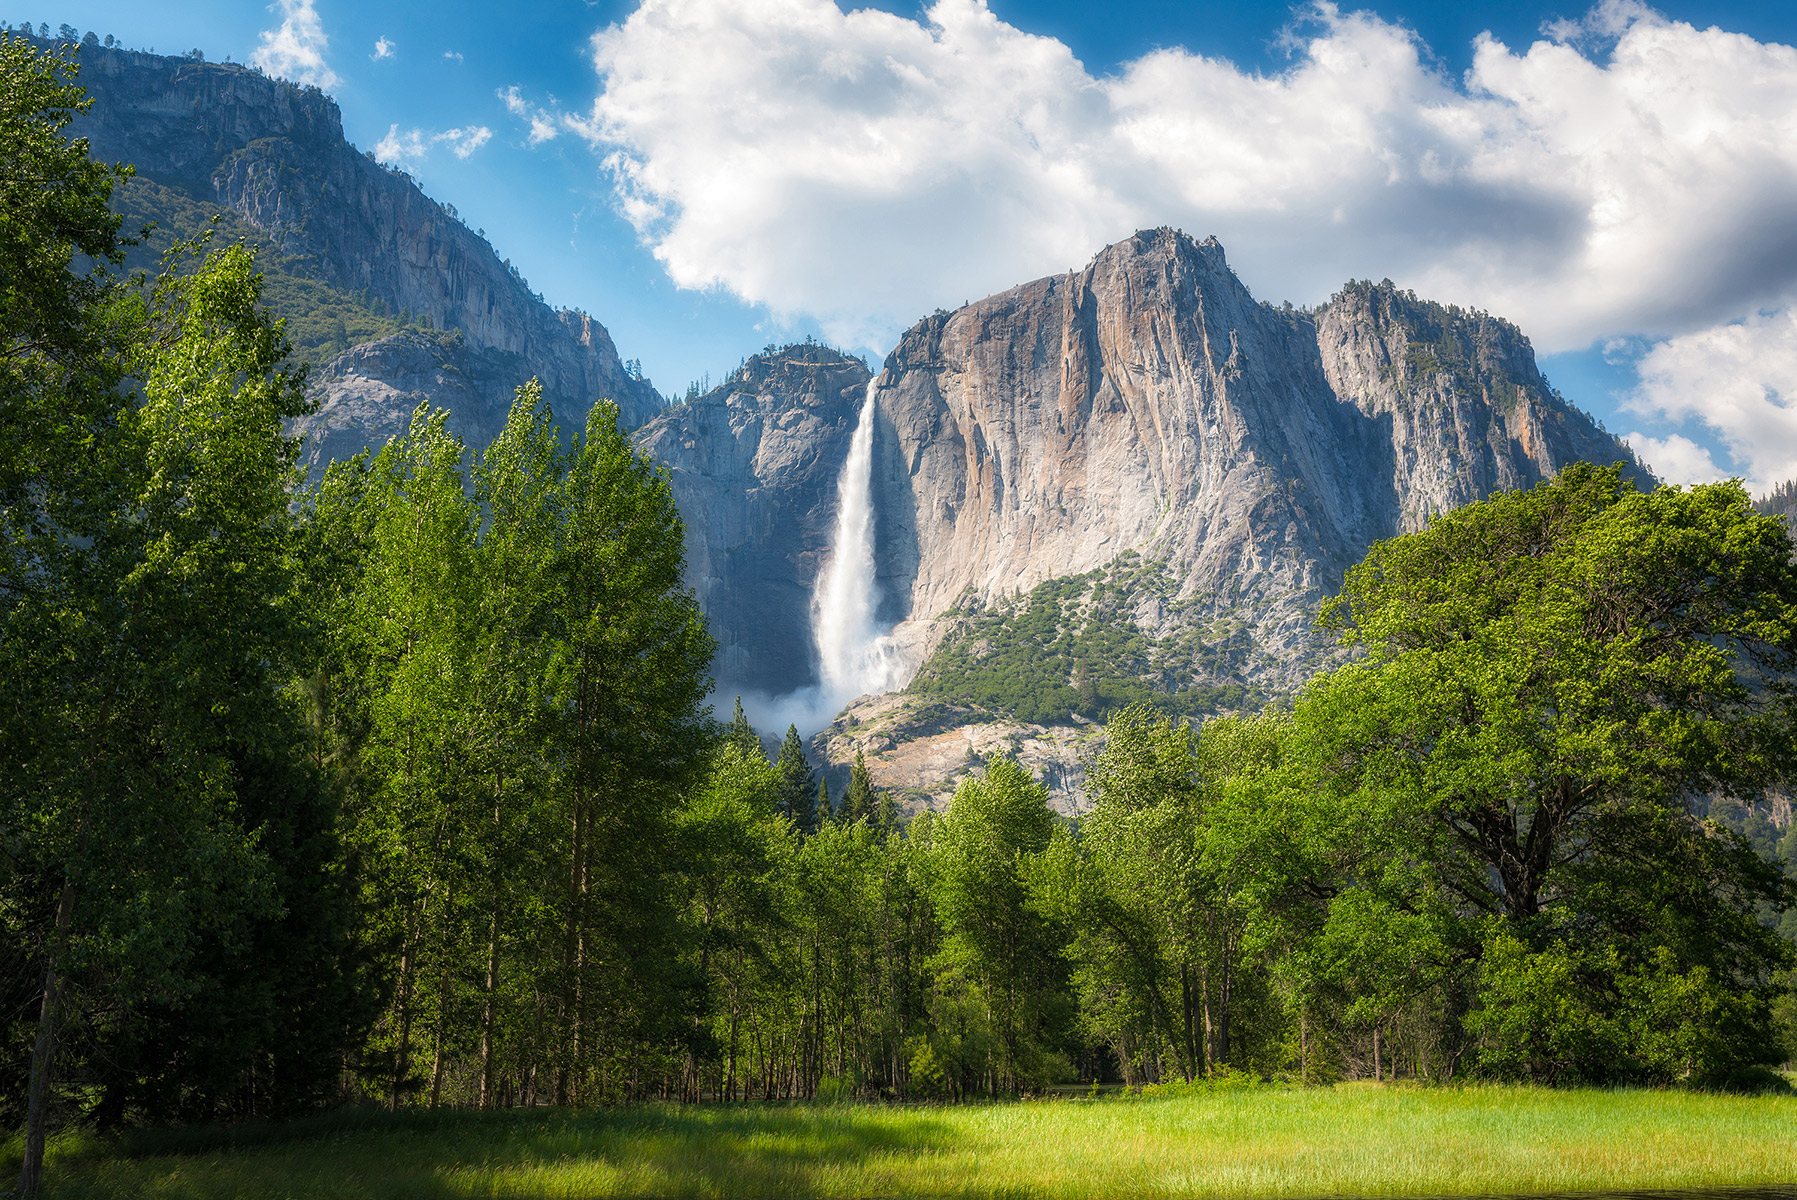 Picture of Yosemite National Park